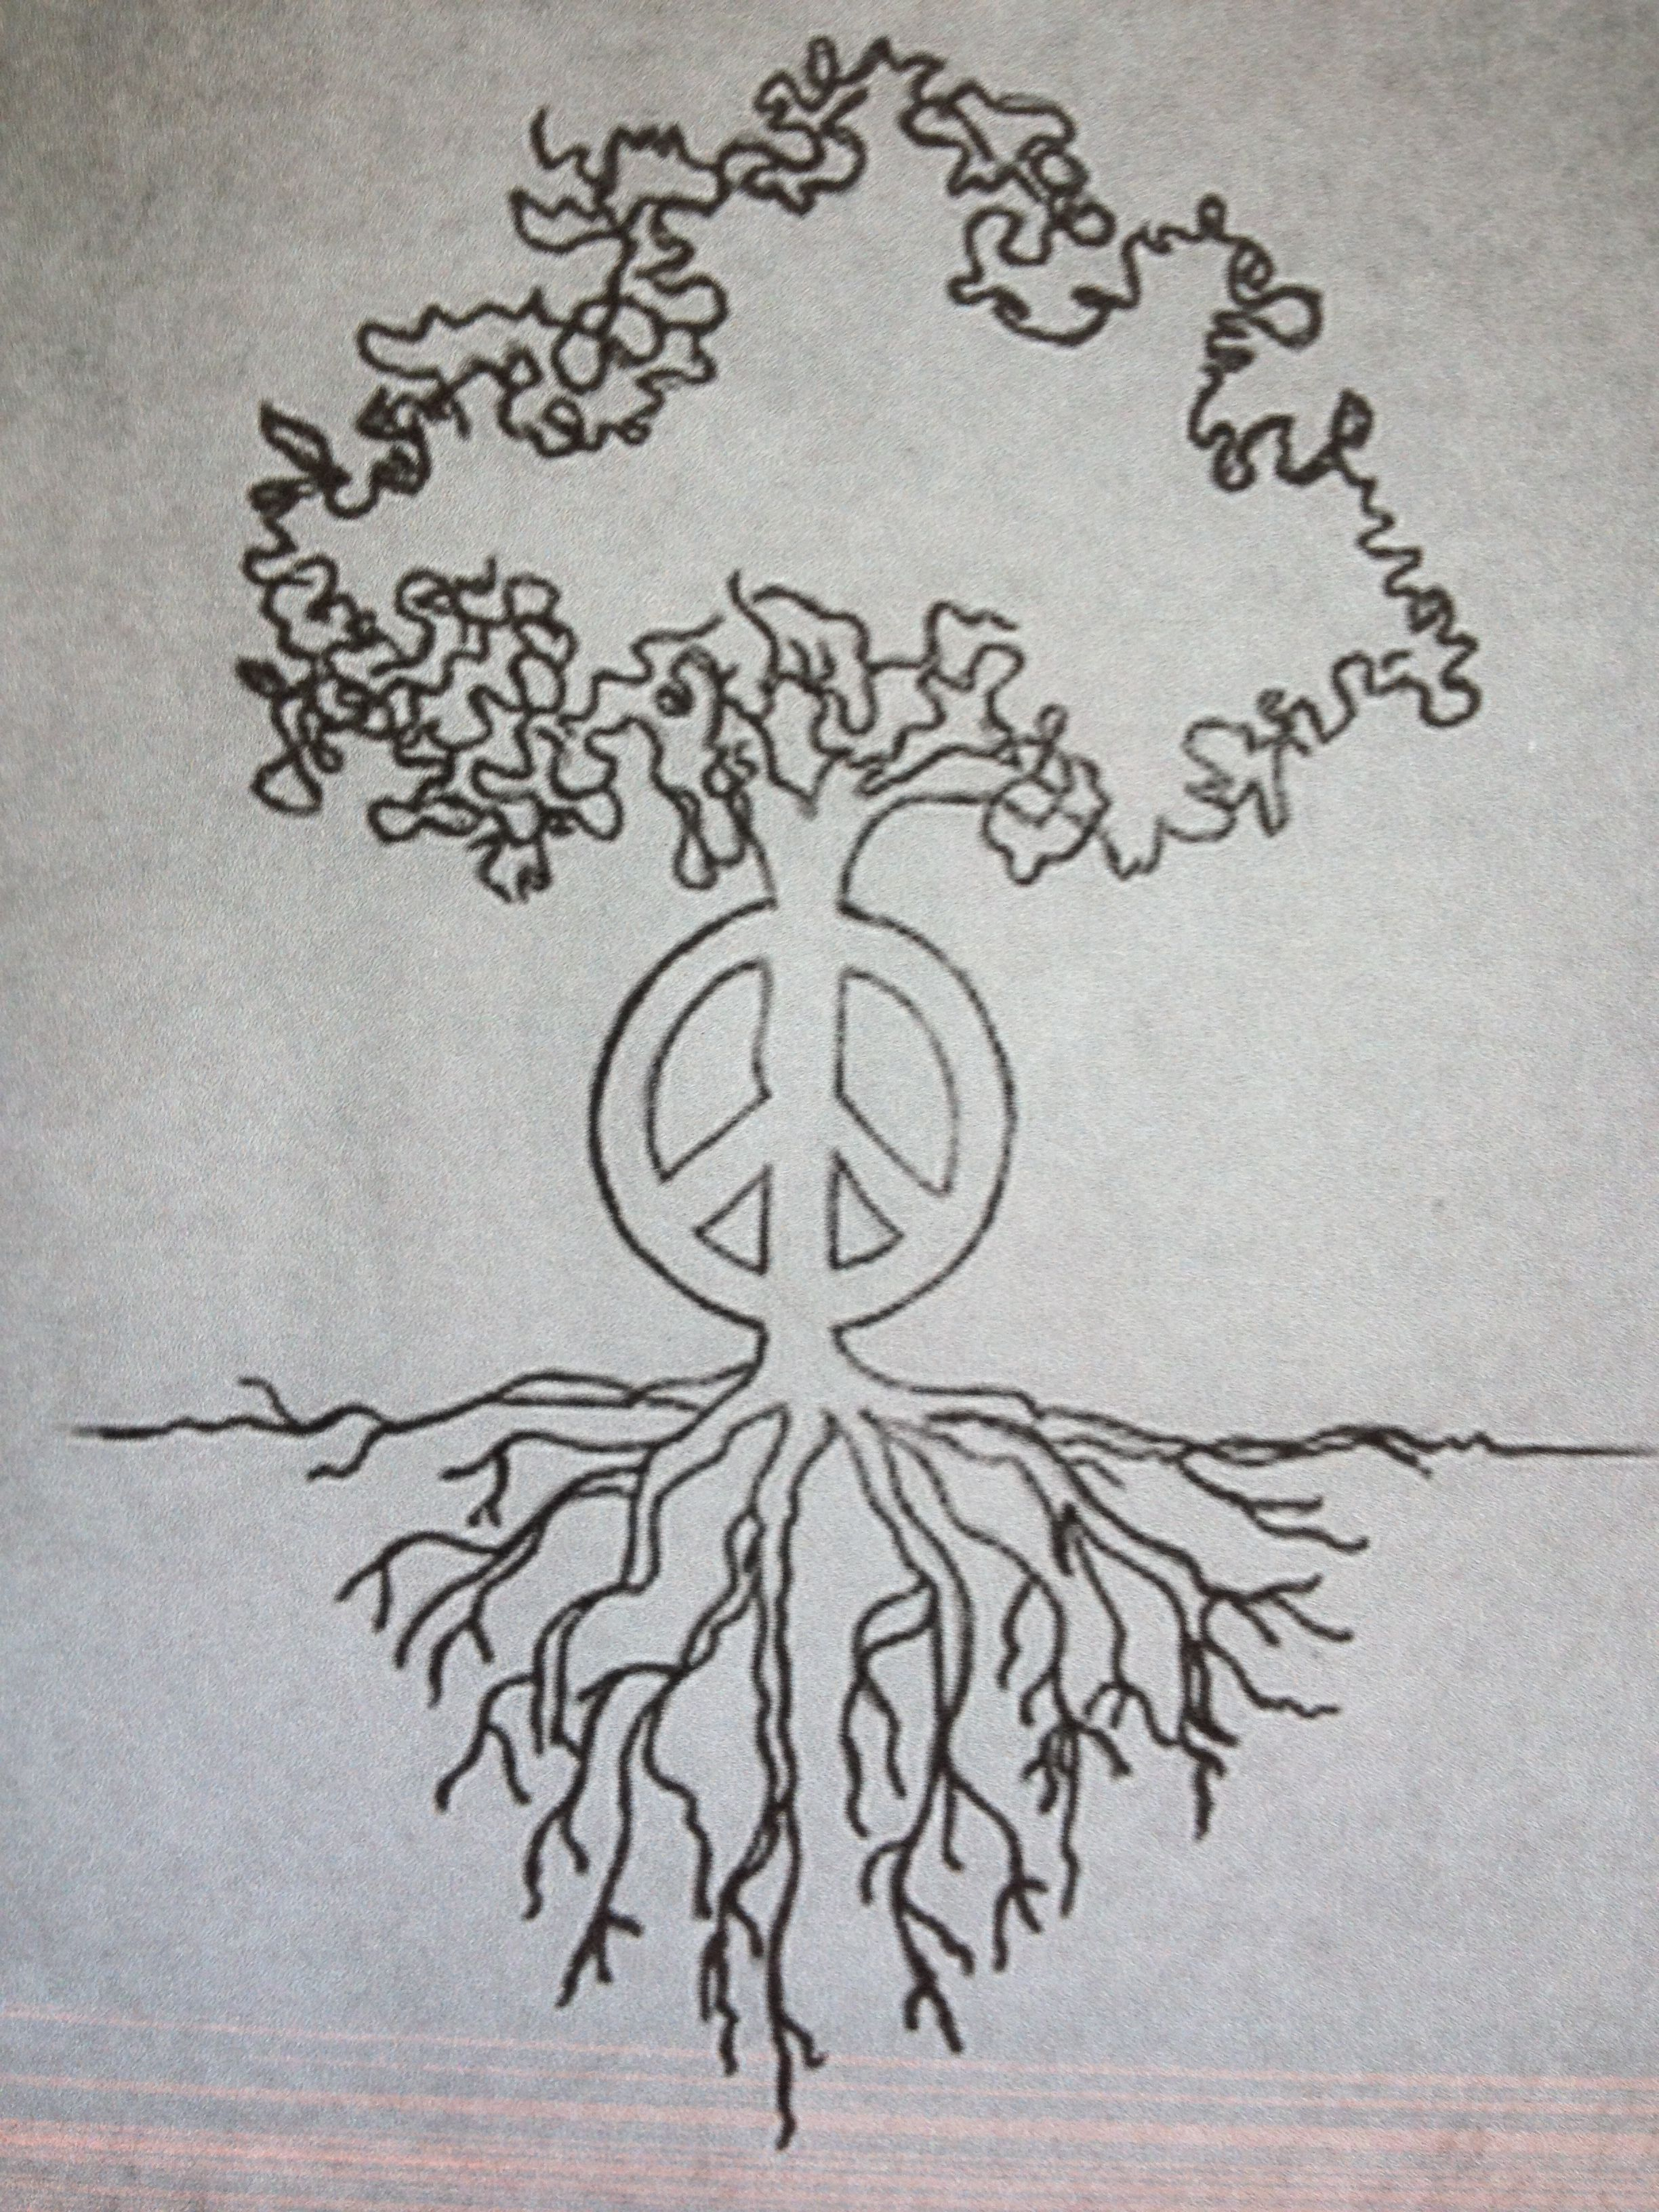 Another idea for a tattoo that I want to put on my upper